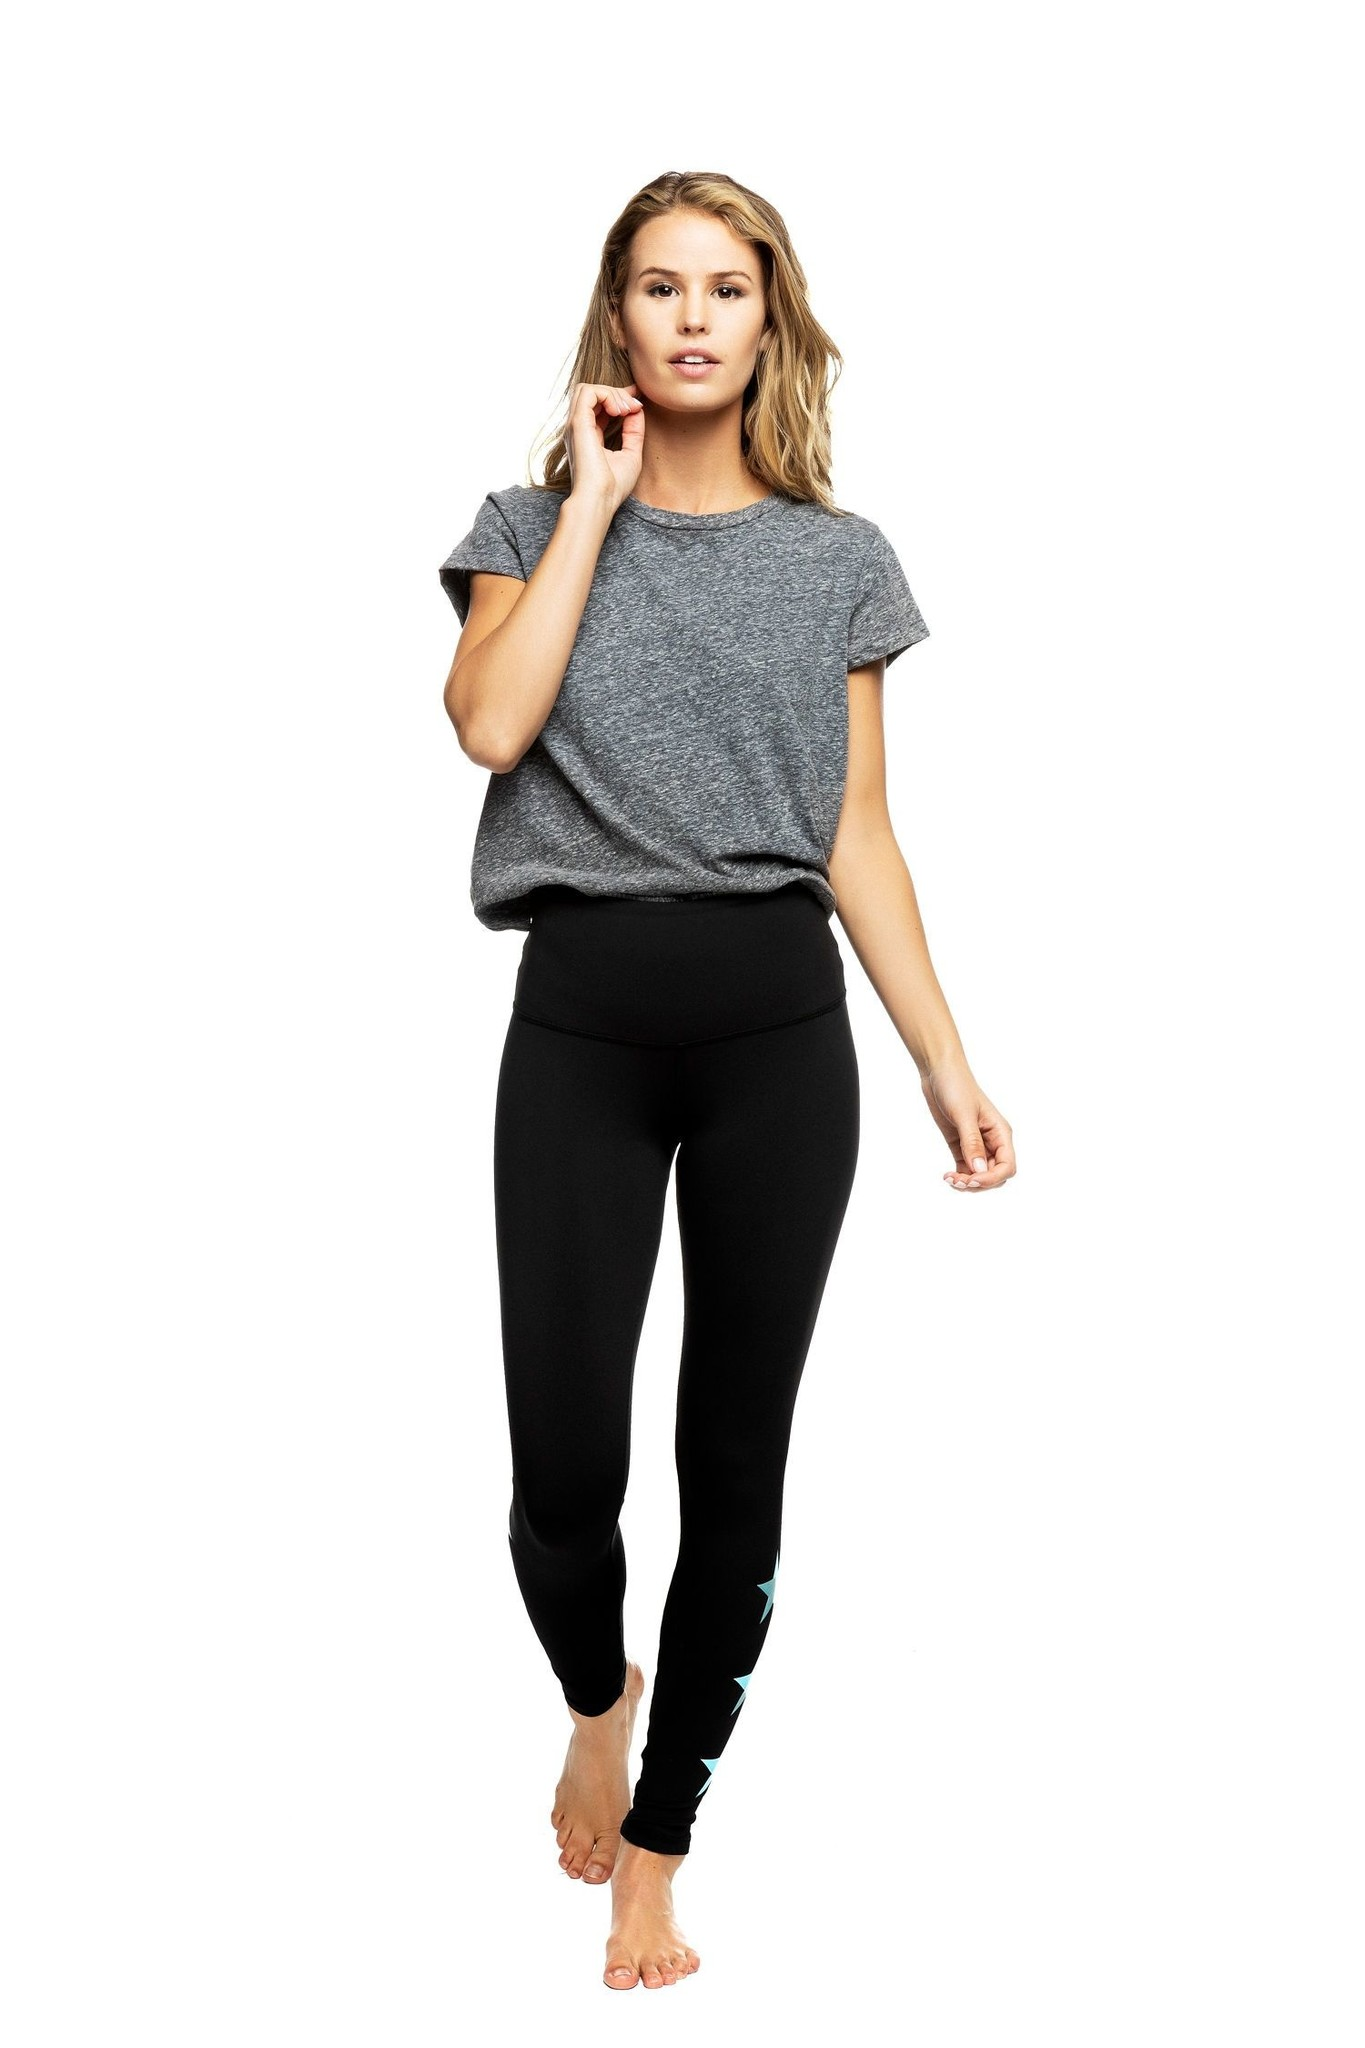 Strut This Star Ankle Black/Teal Legging